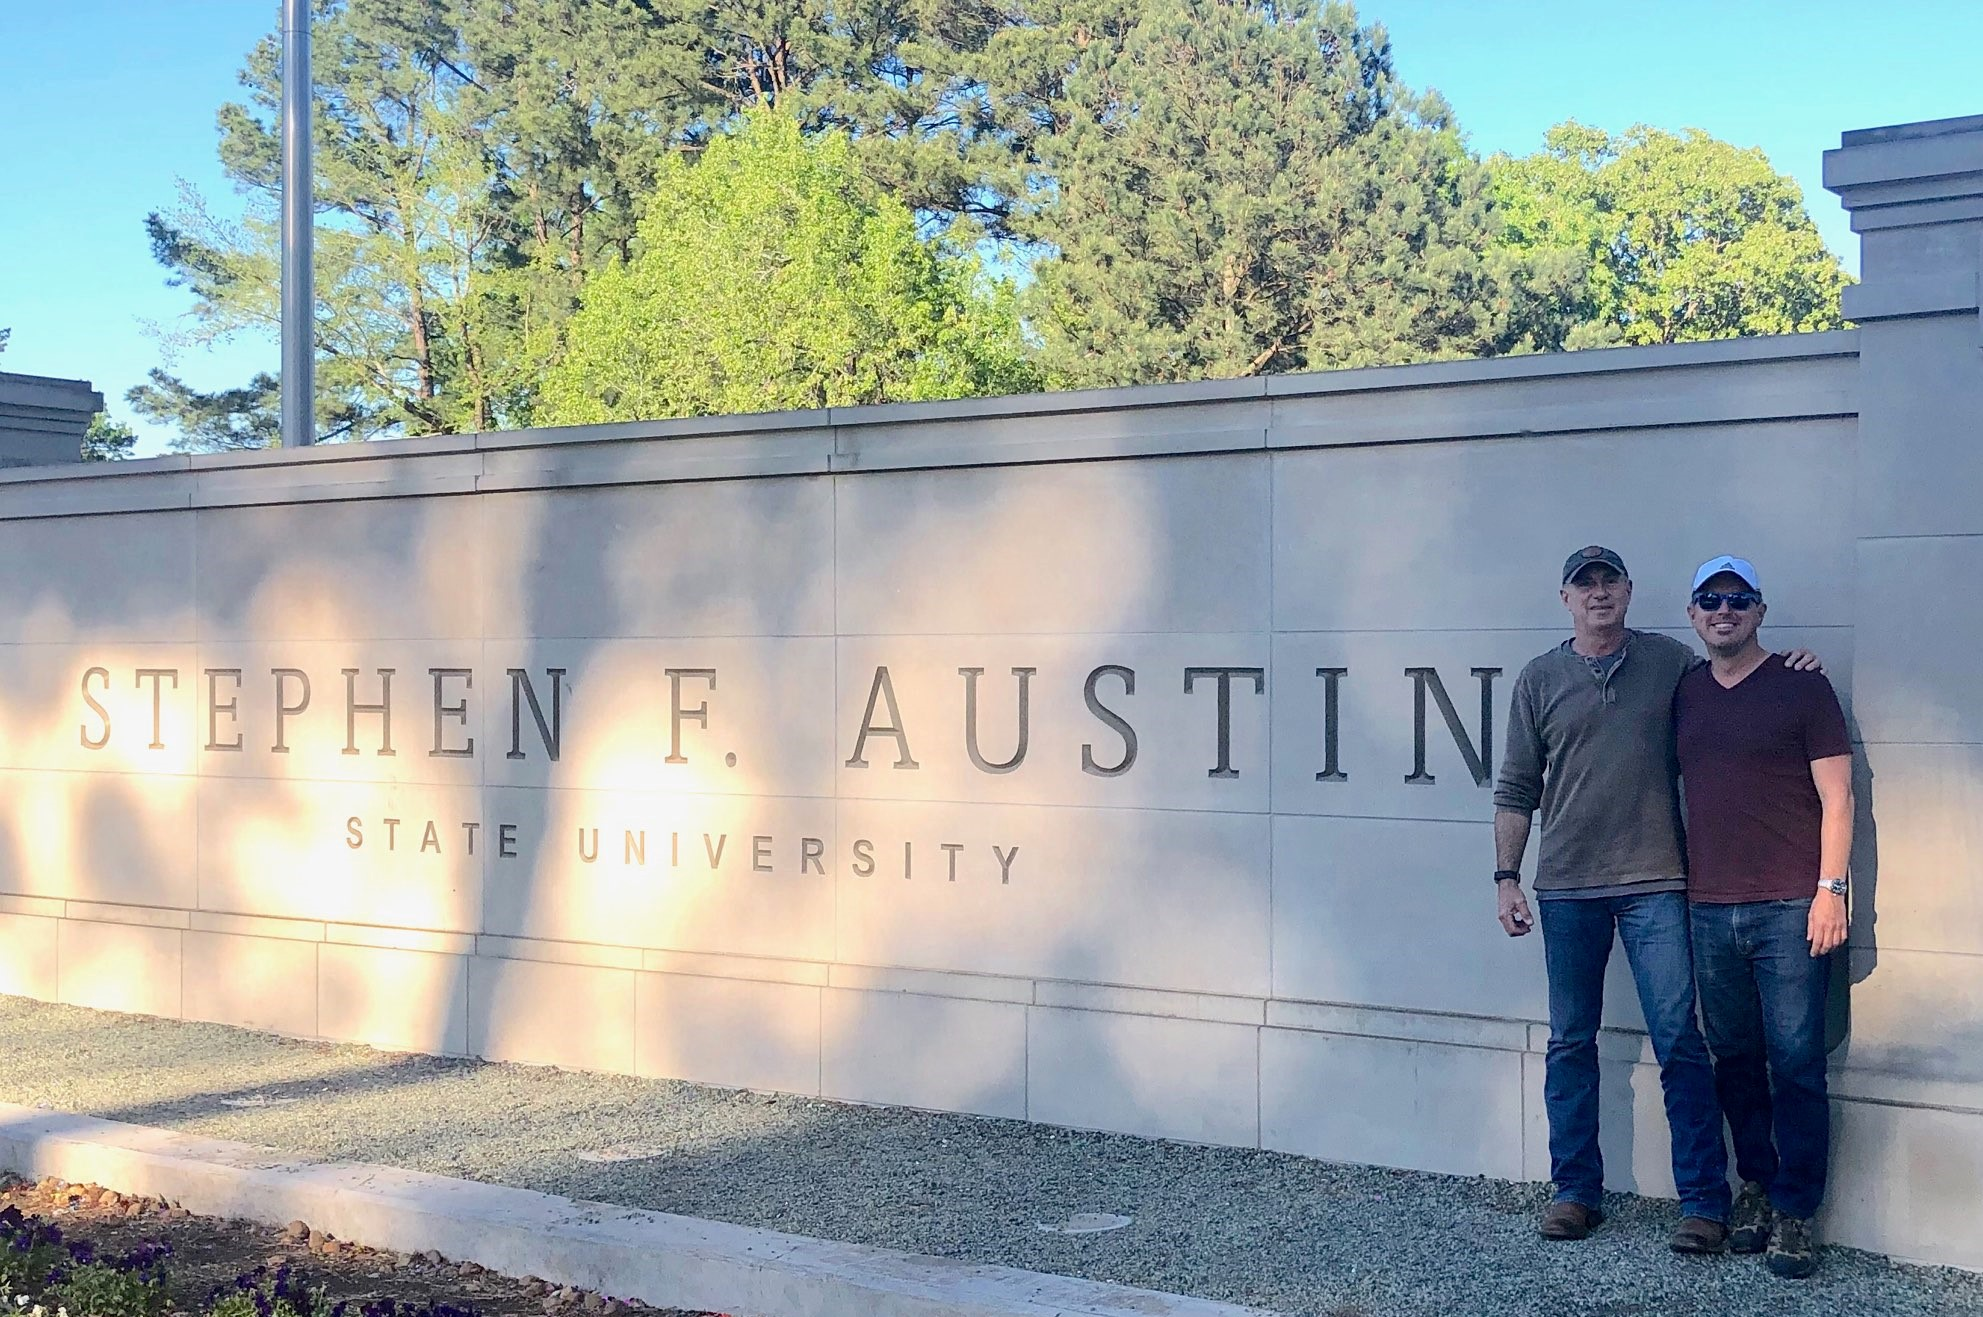 Me and my dad at Stephen F Austin University where he attended in Nacogdoches, TX.